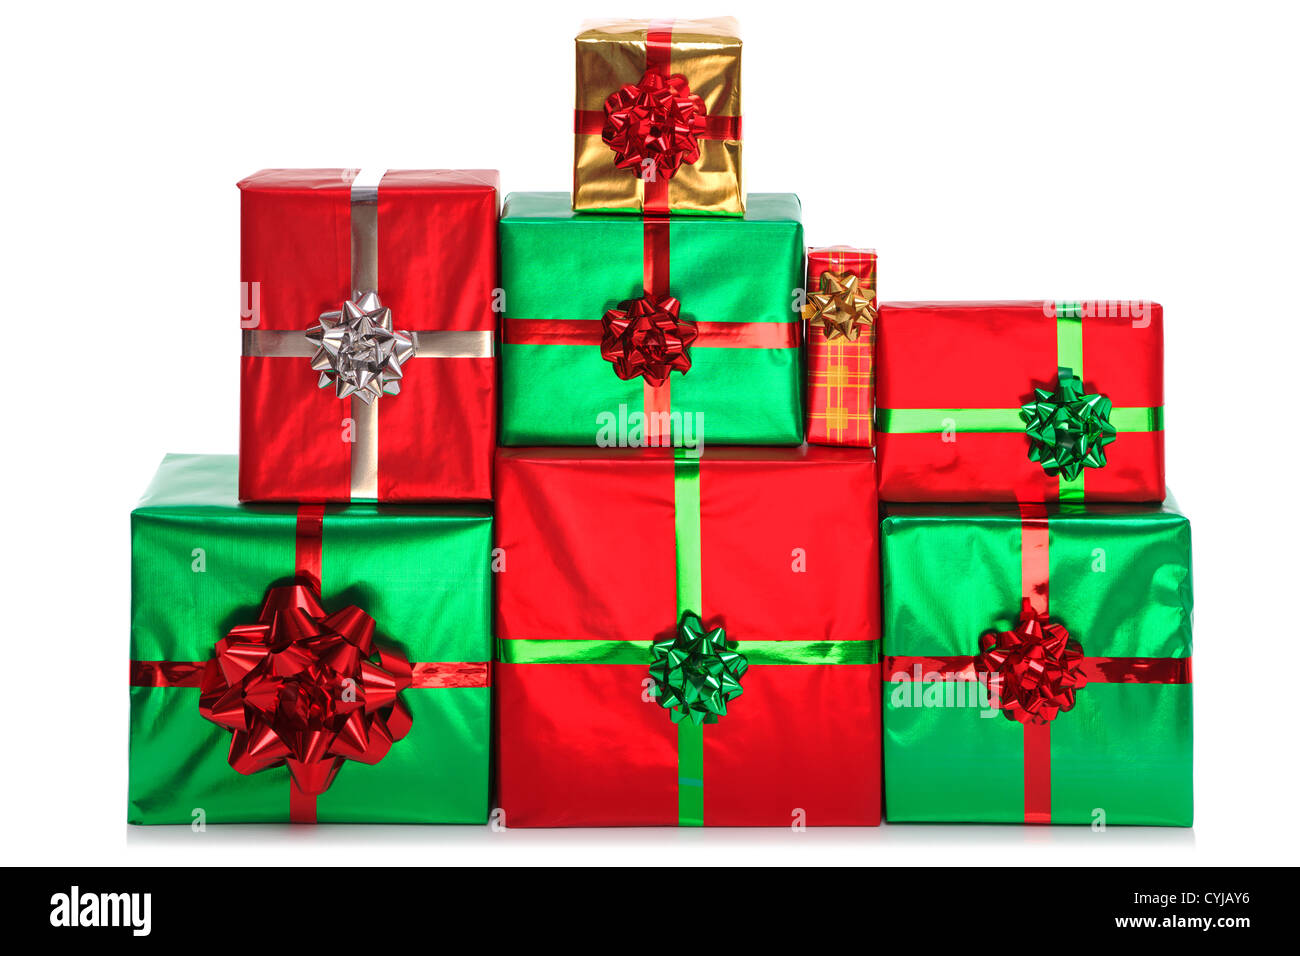 a group of gift wrapped presents in bright shiny wrapping paper with